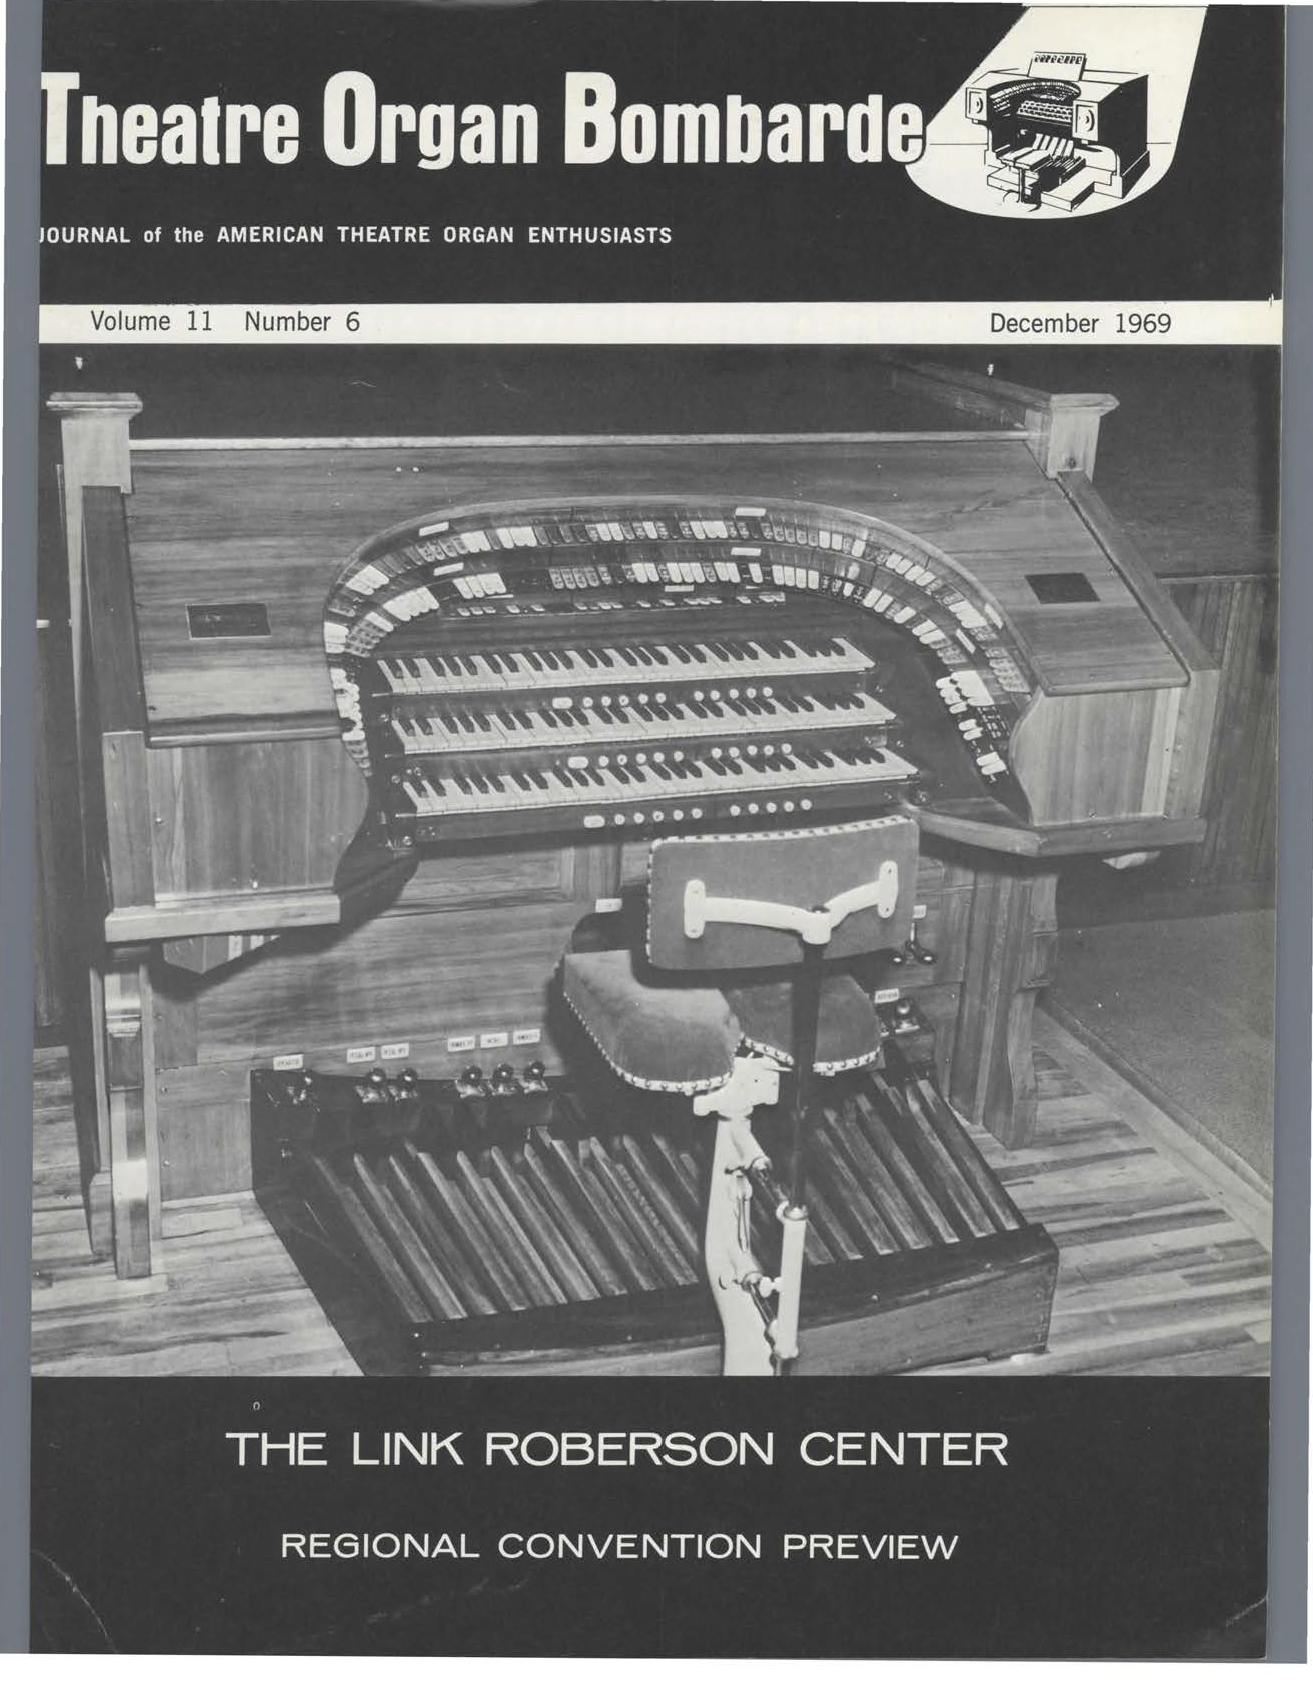 Theatre Organ, December 1969, Volume 11, Number 6